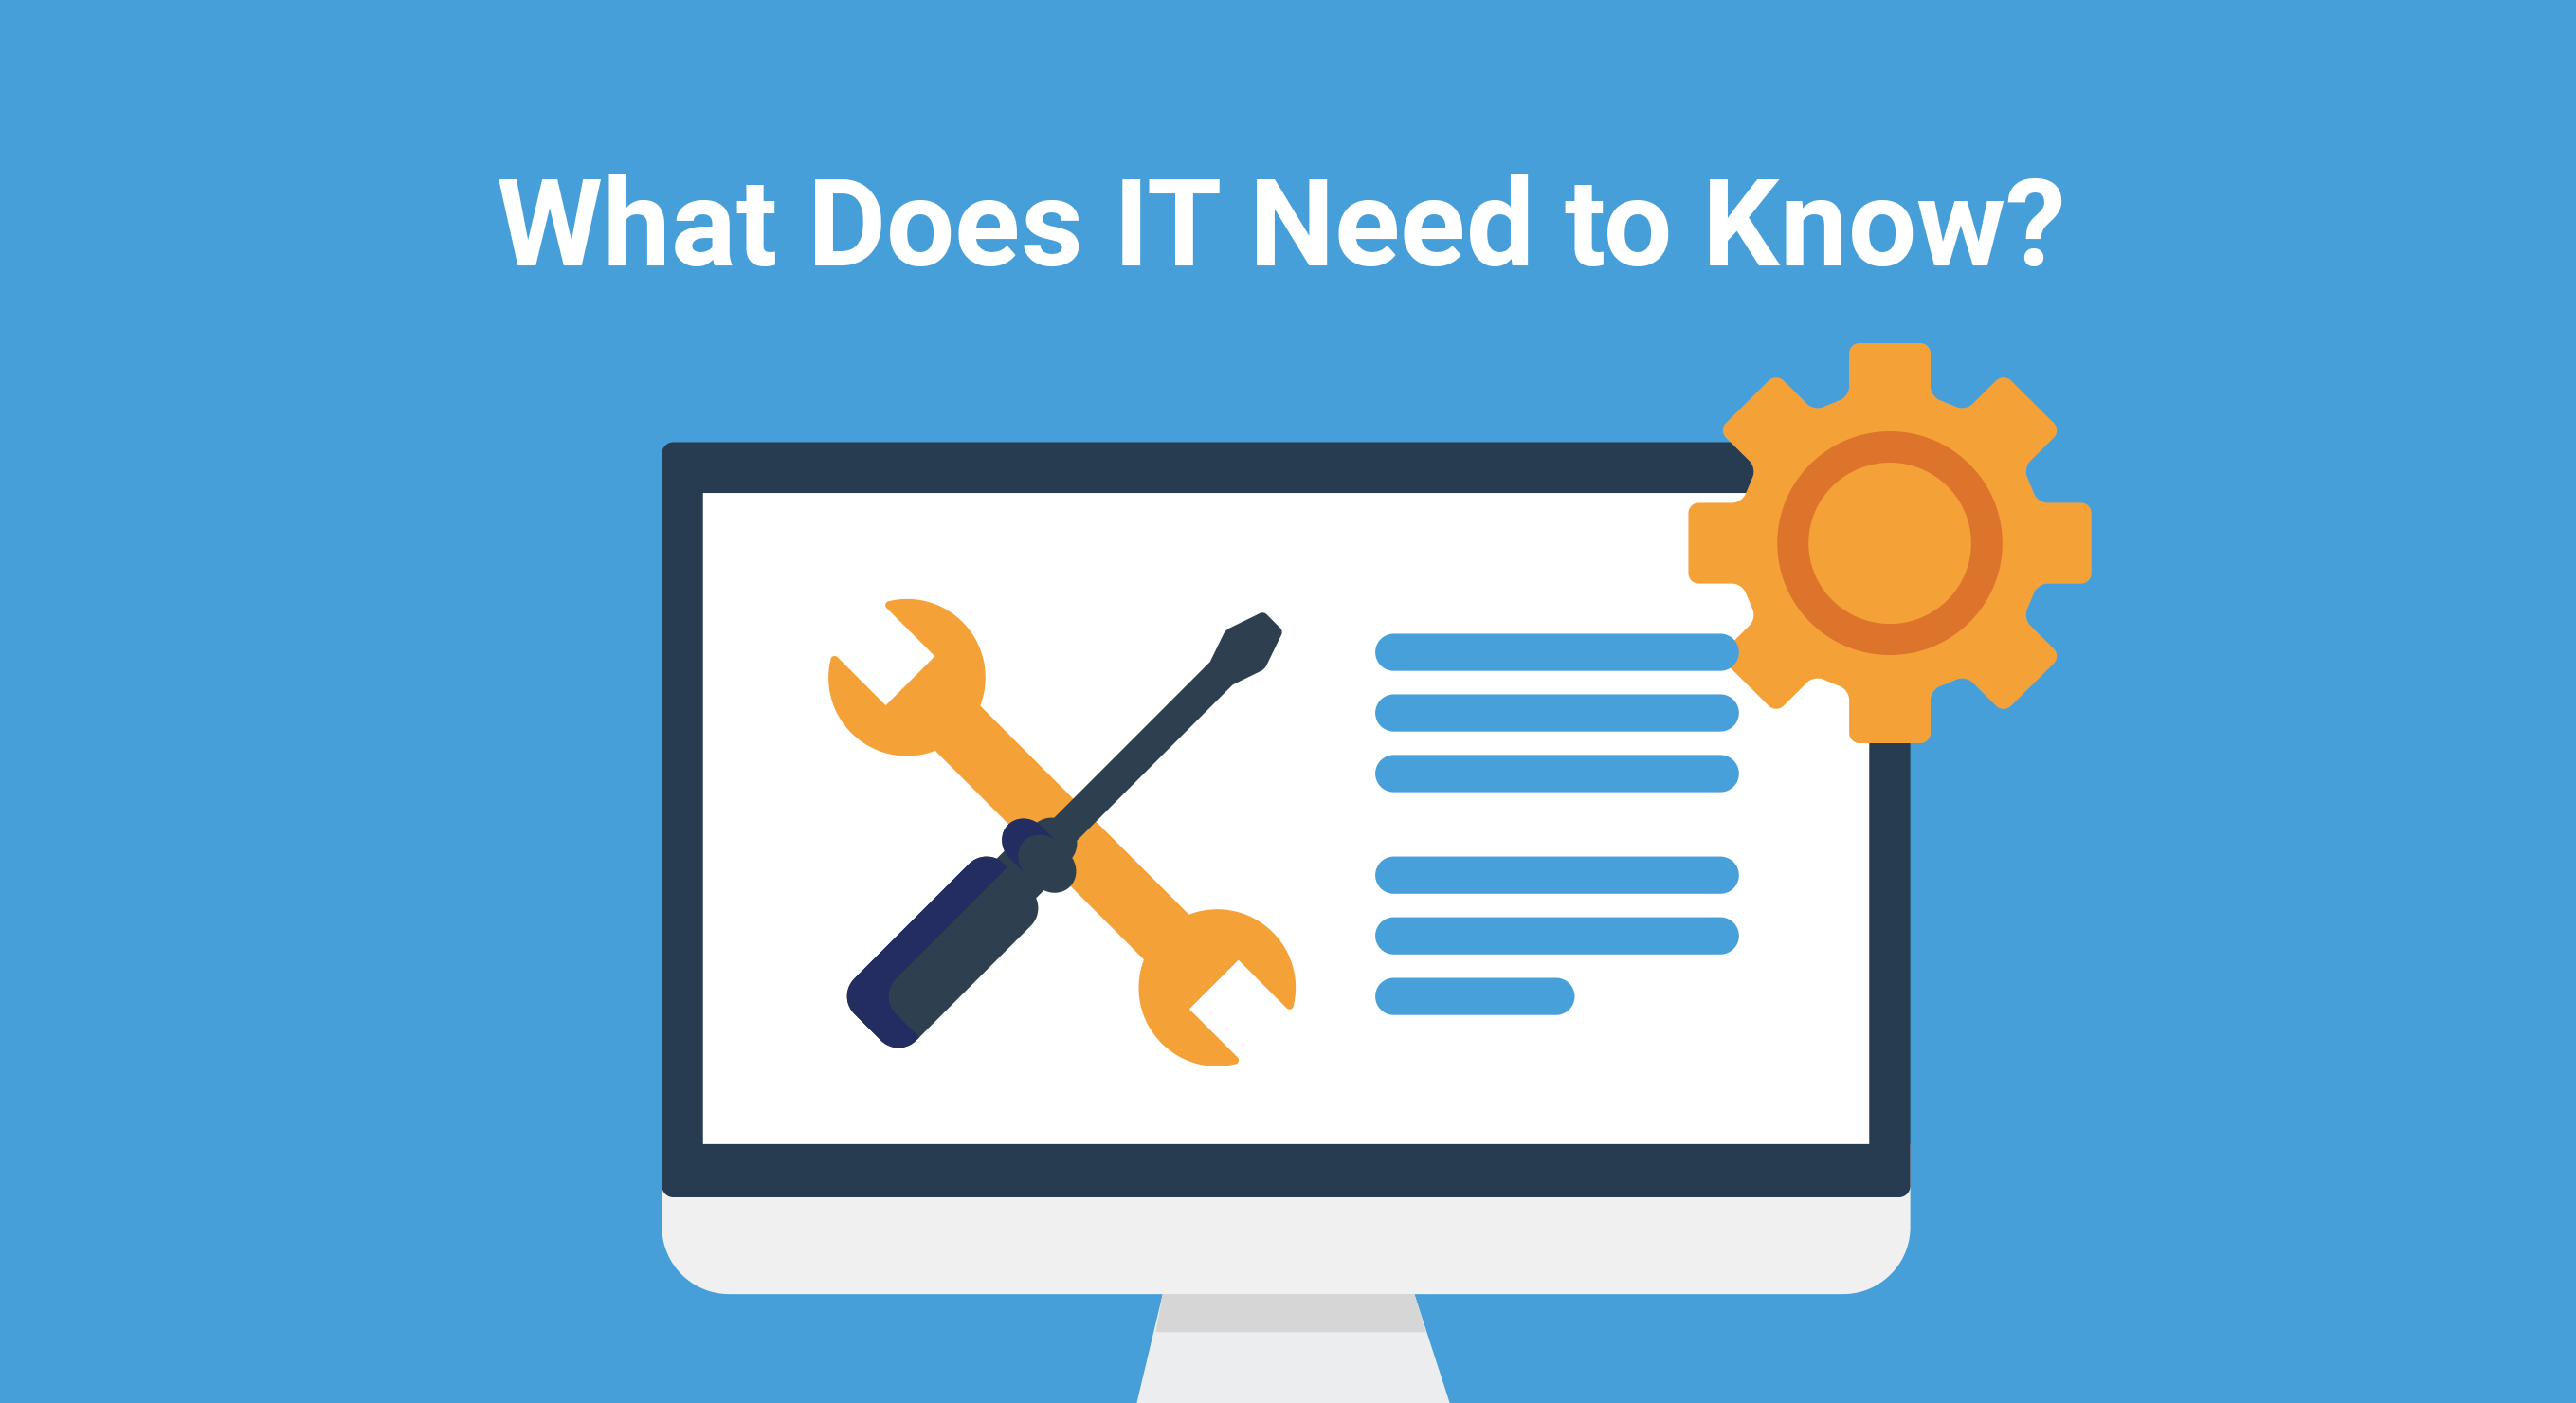 What does IT need to know about Exam Software